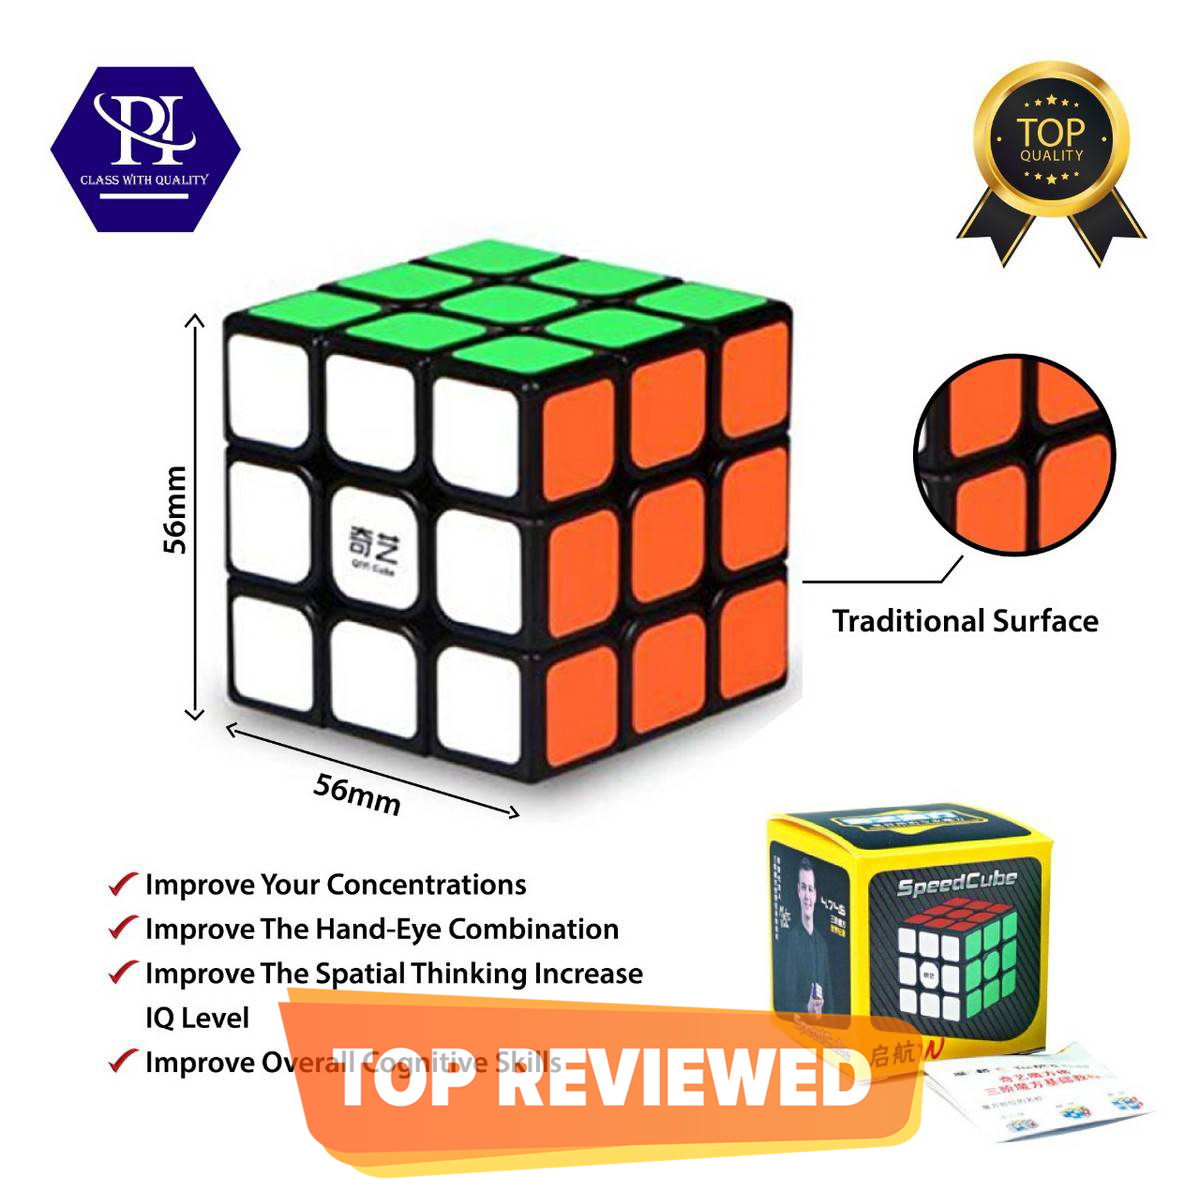 Qiyi Warriors Fast Speed Rubiks Cube (Classic colors) Smooth Logo- 3x3 Quality Stickerless Magic Speed Cube-3x3x3 Puzzle Toys (56mm),The Most Educational Toy- Rubik's Cube